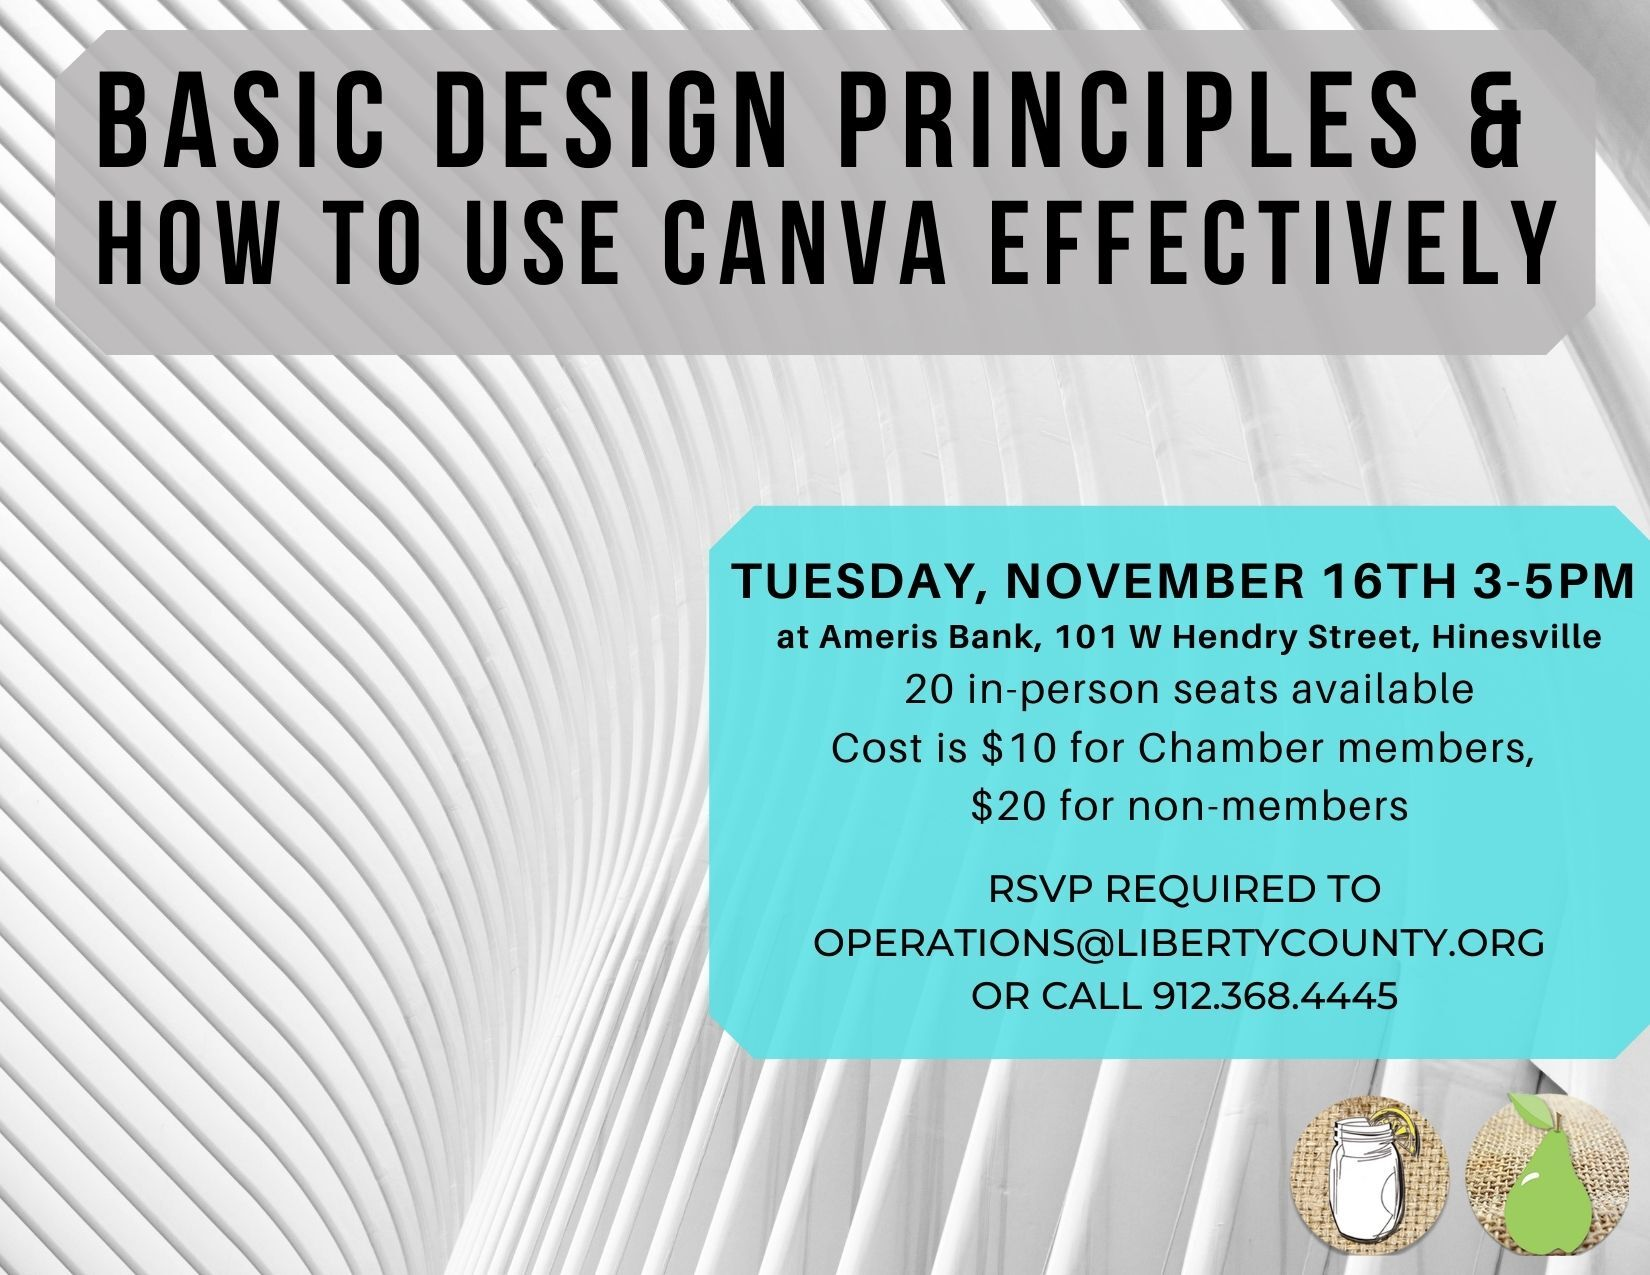 Basic Design Principles and How to Use Canva Effectively workshop